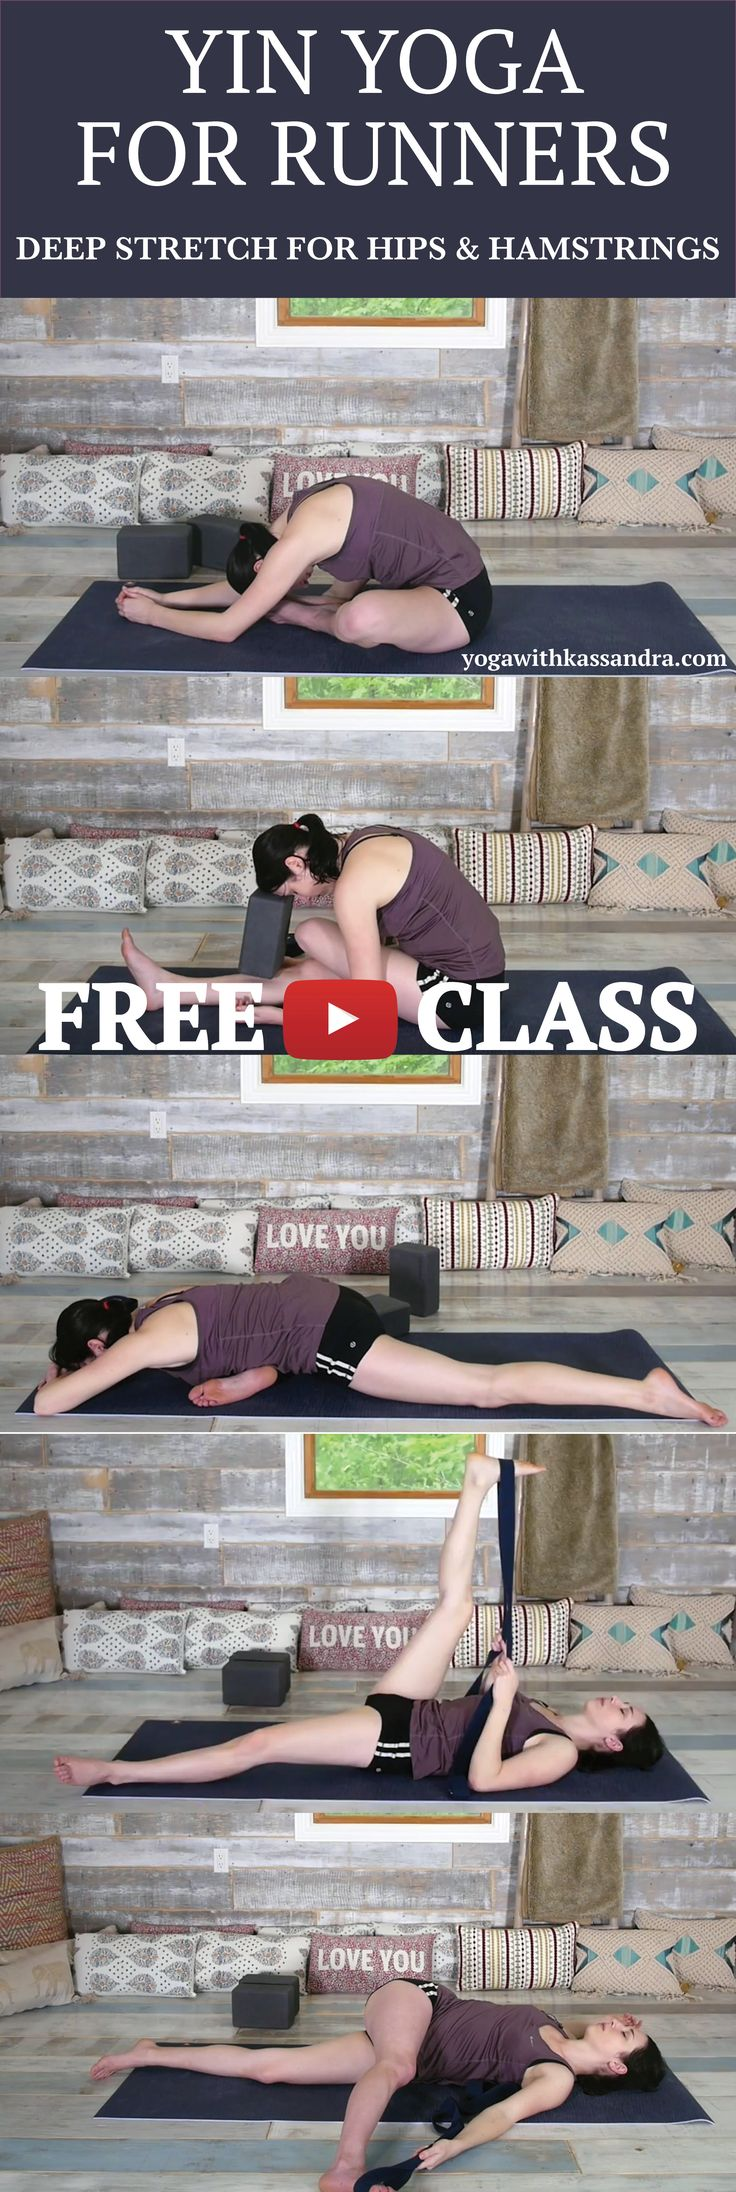 Yoga for runners is one of the videos I get the most requests for. And although yoga for runners was one of the first videos that I created on my channel, I thought it was time for a revamp (bigger and better right?) As these are yin yoga poses, we move slowly through only a handful of poses and hold each one for about 3-5 minutes. Take your time setting up for each of these poses, get in and out of them slowly. Additionally due to the lengthy holds, you will want to keep the...